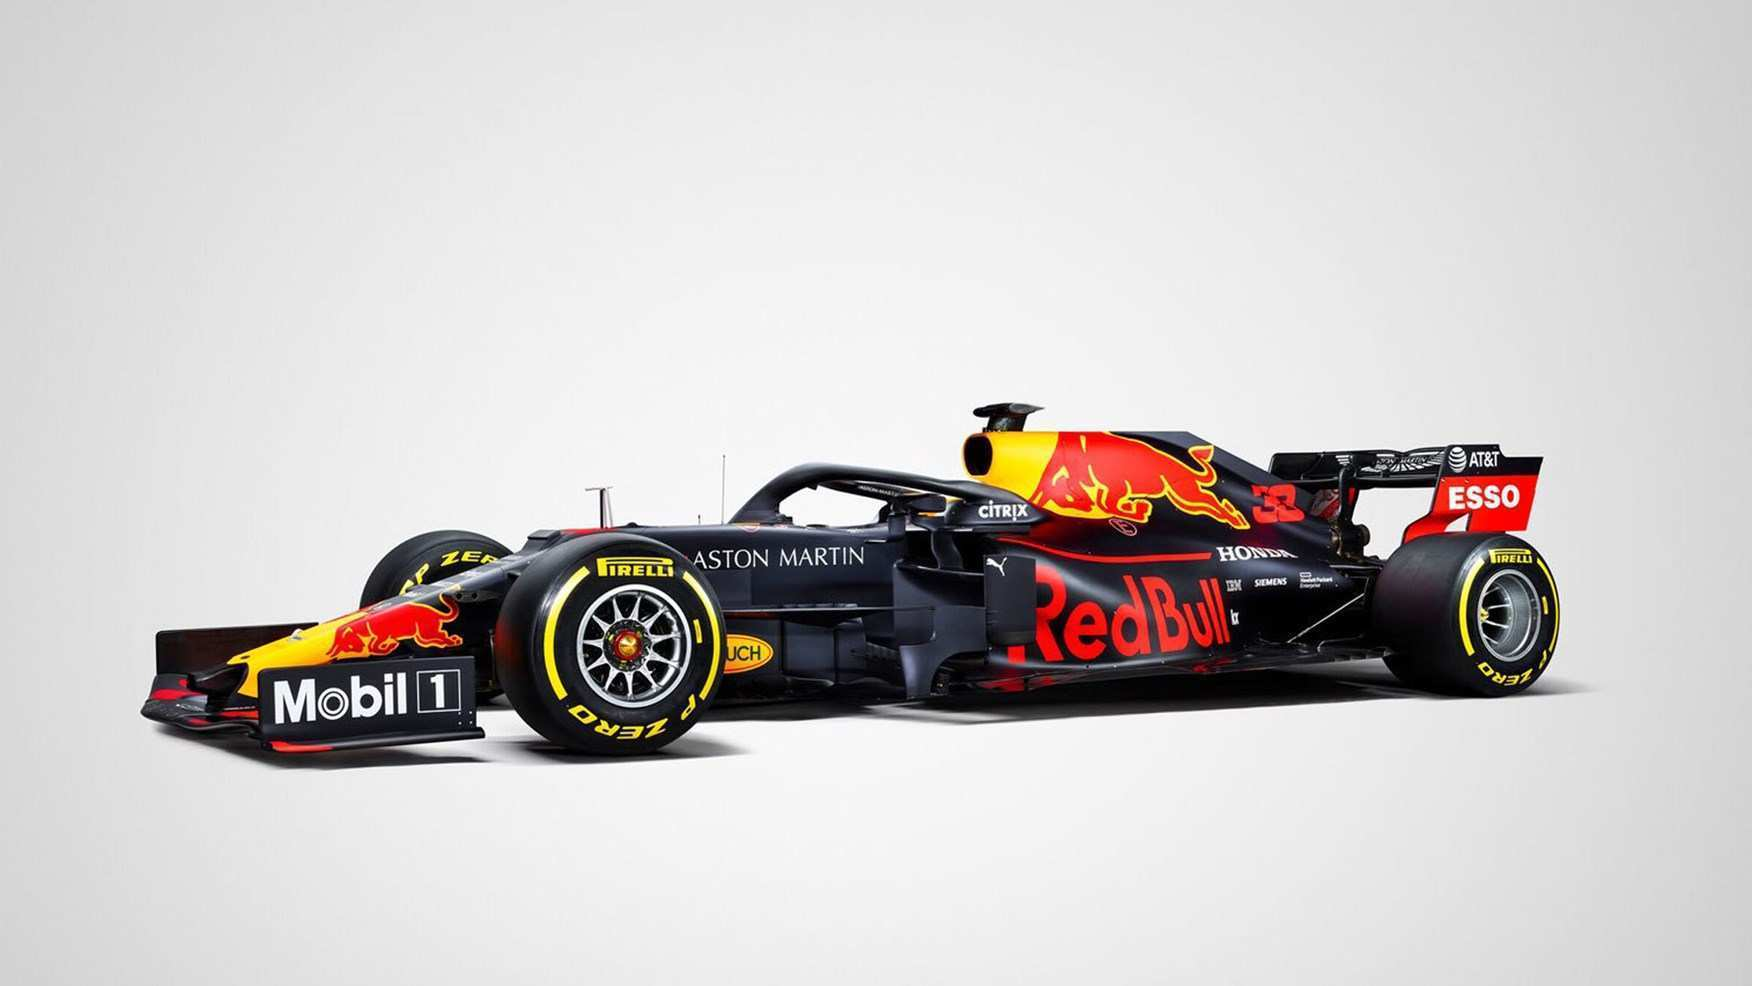 58 Great New Bottas Mercedes 2019 Review And Release Date Release Date for New Bottas Mercedes 2019 Review And Release Date